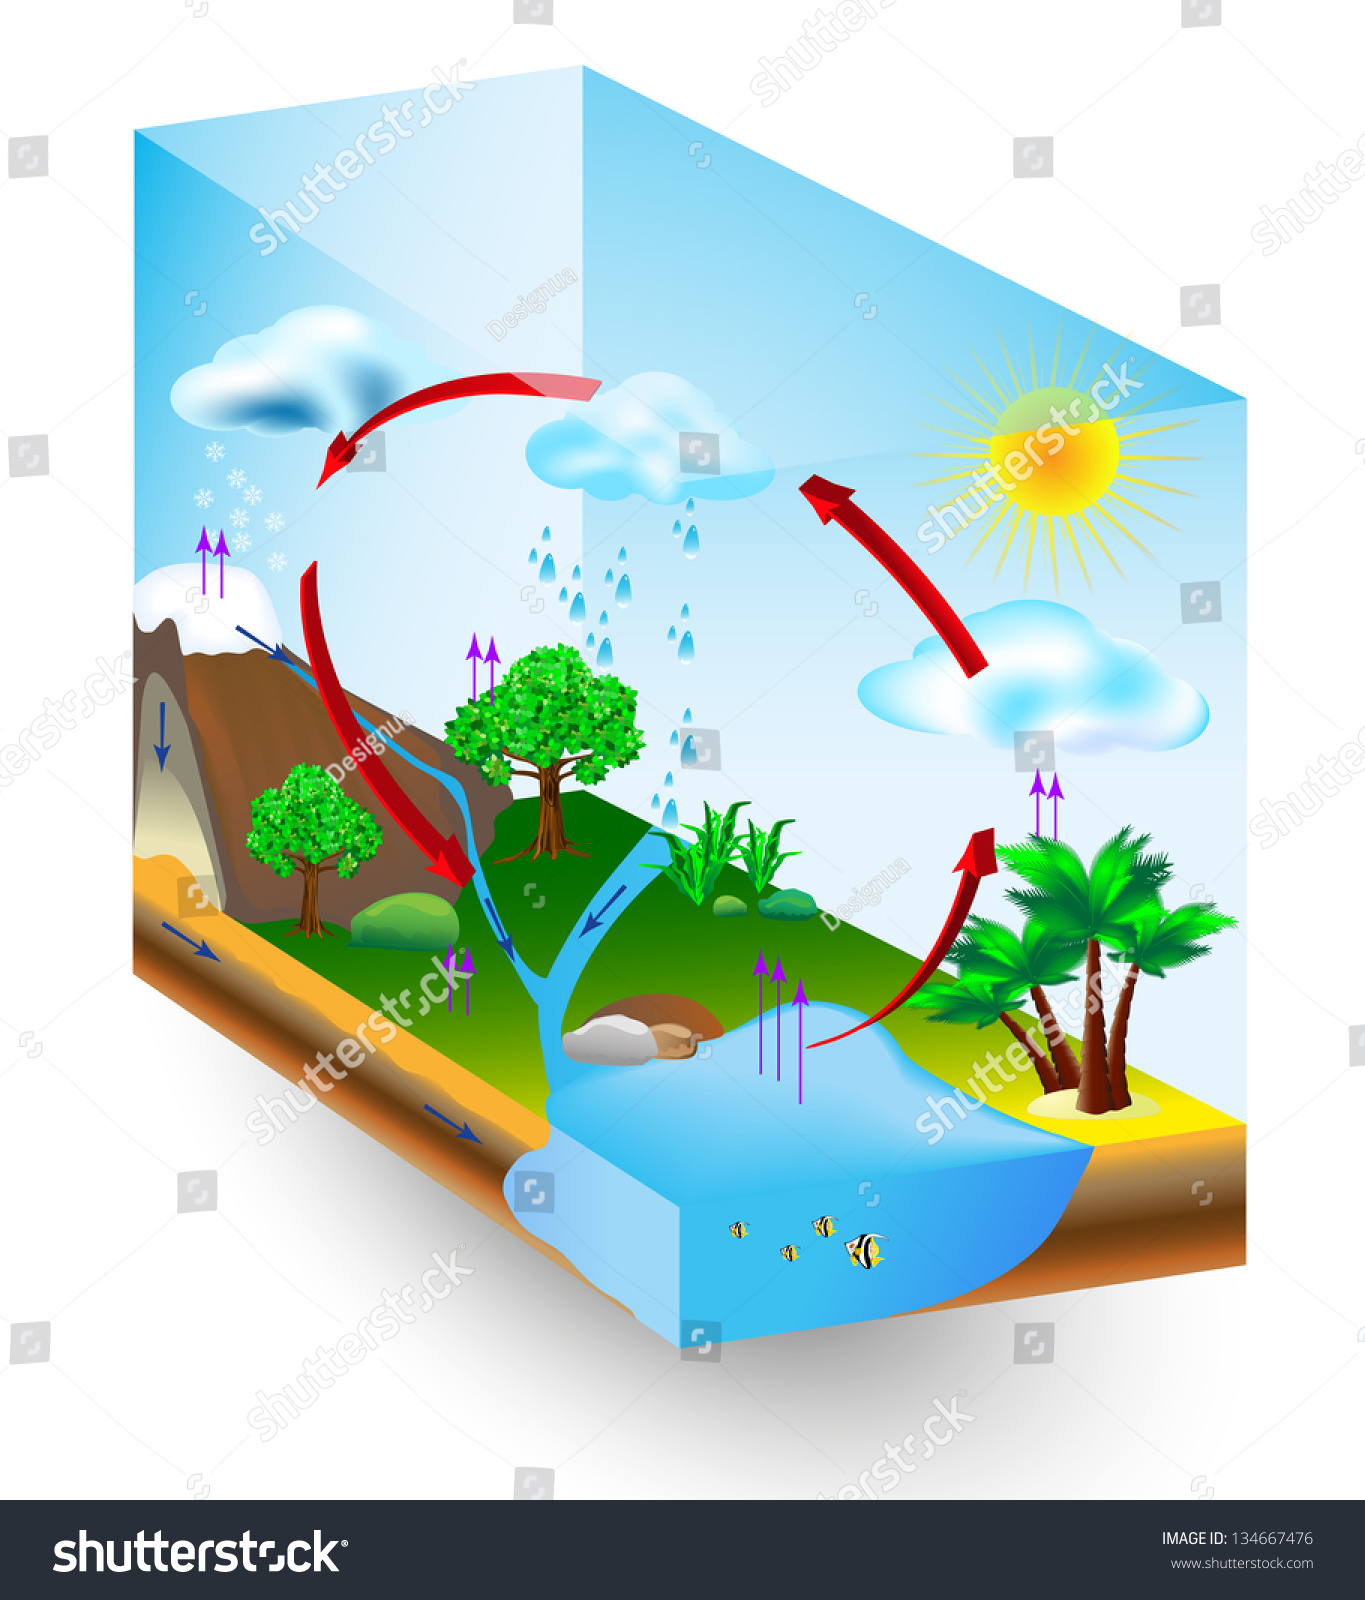 water cycle diagram vector condensation evaporation stock. Black Bedroom Furniture Sets. Home Design Ideas